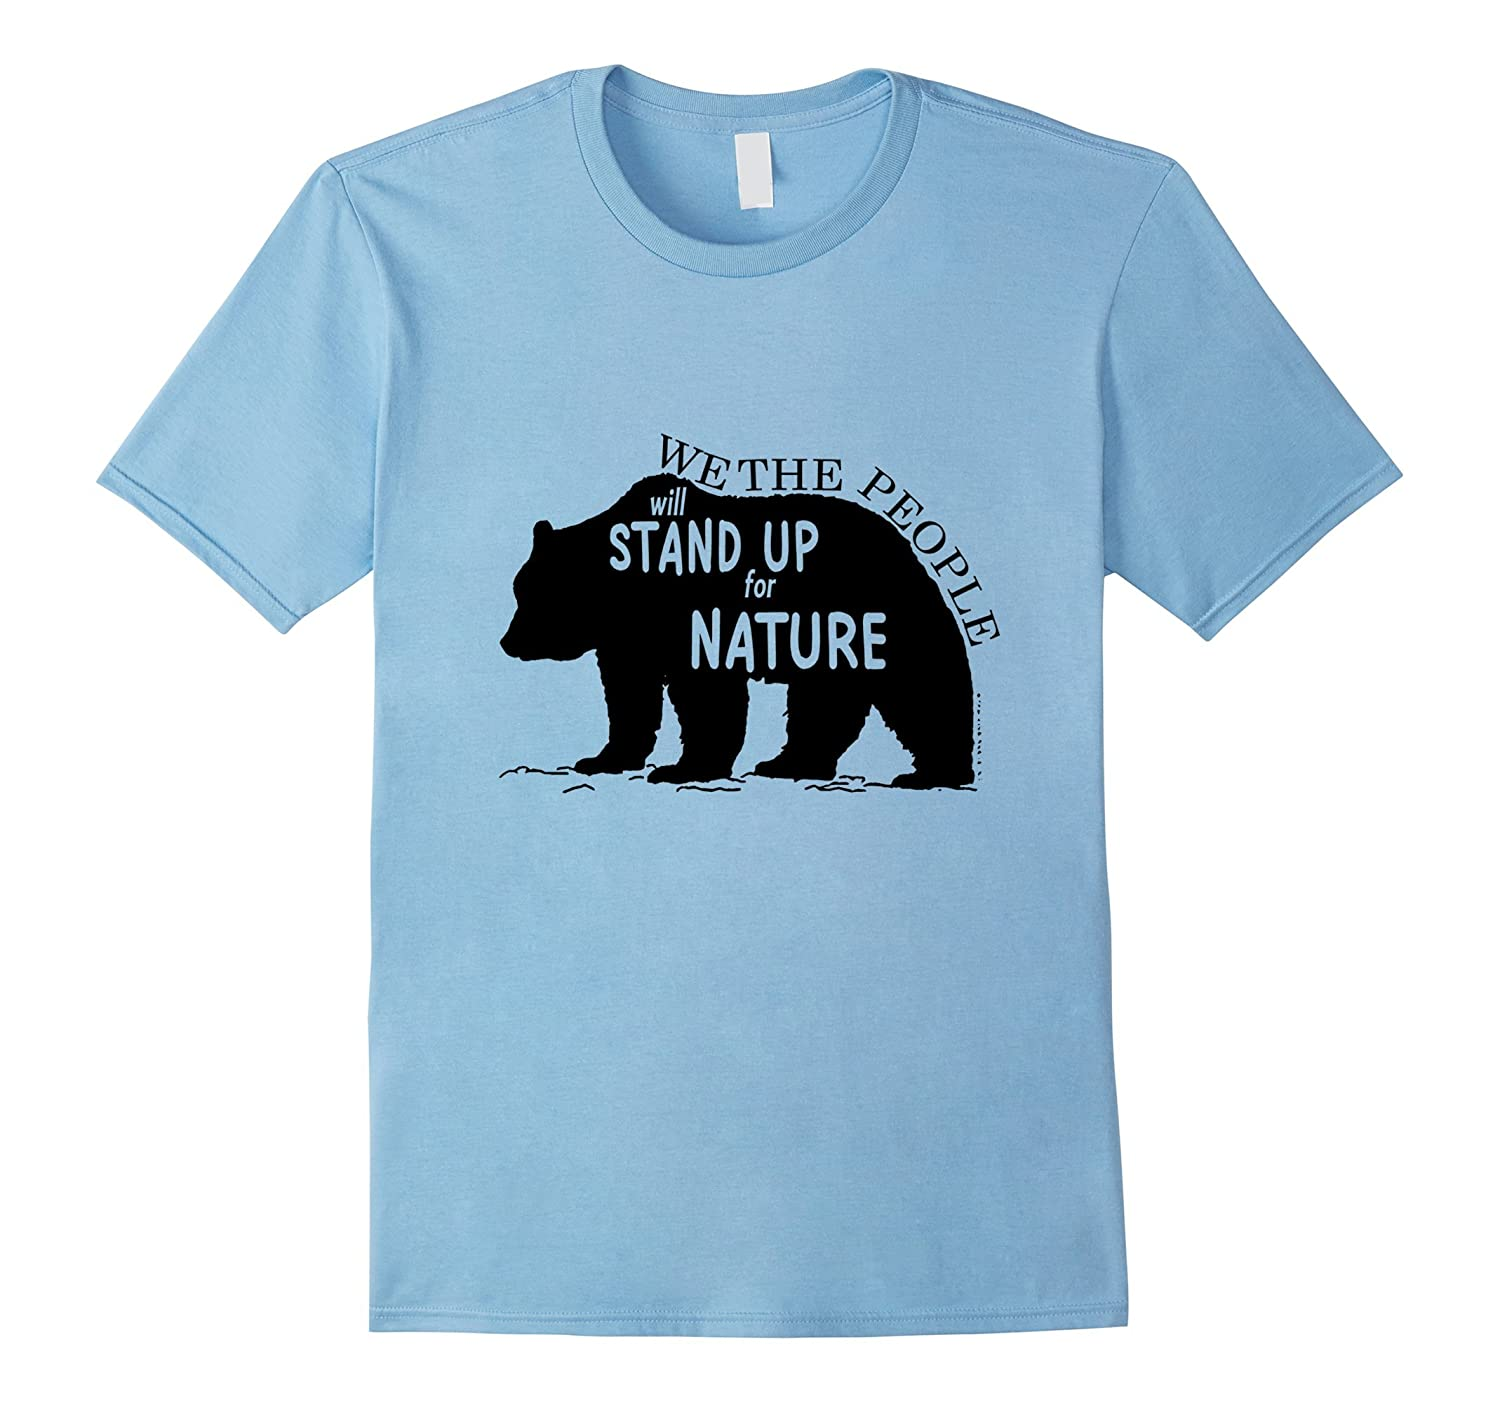 We the people will stand up for nature-CD